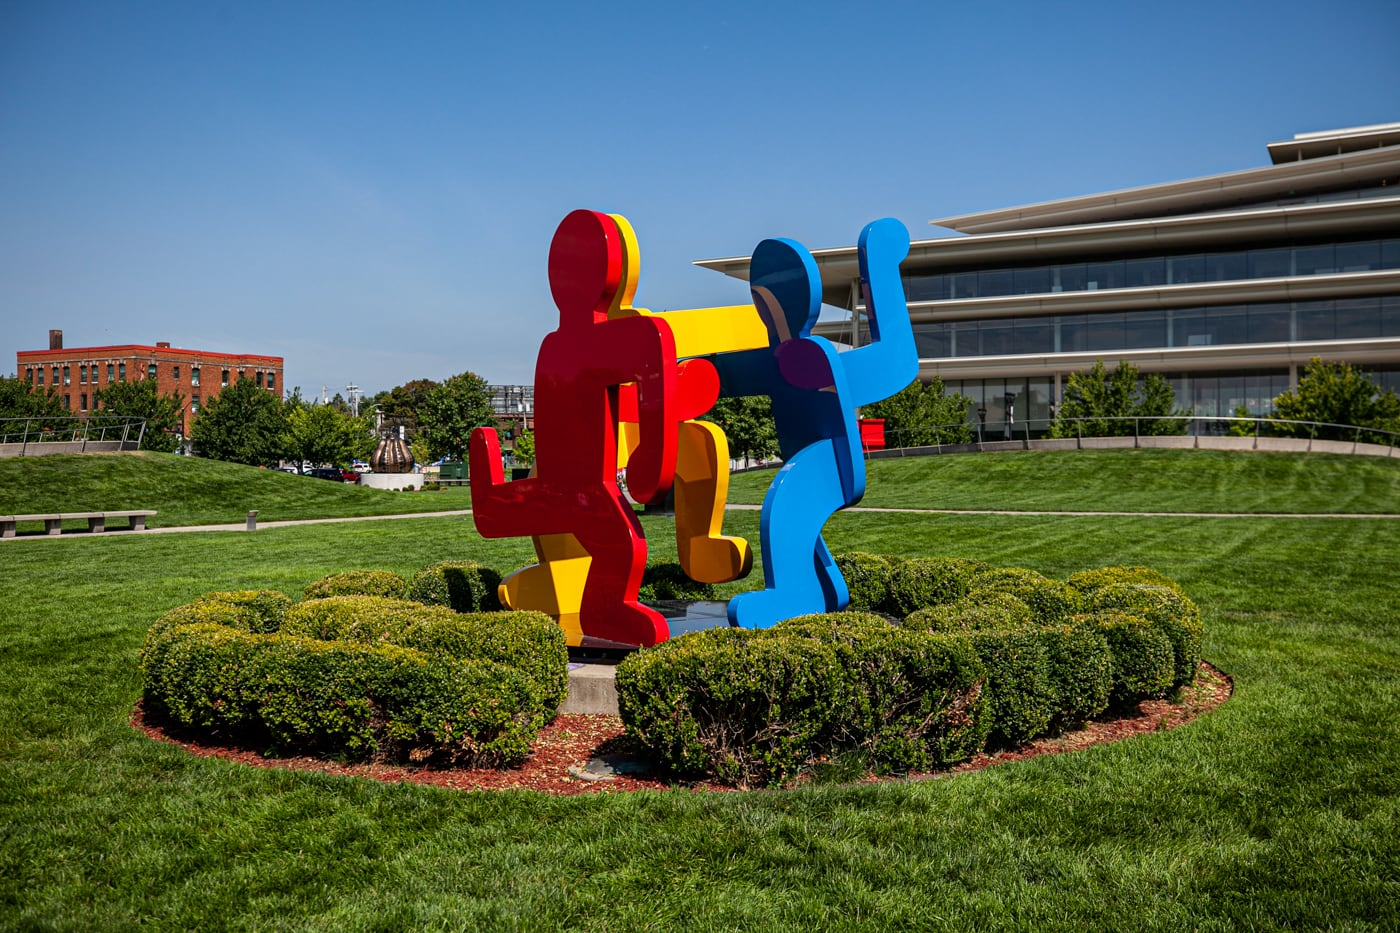 Keith Haring Three Dancing Figures 1989 | Pappajohn Sculpture Park in Des Moines, Iowa